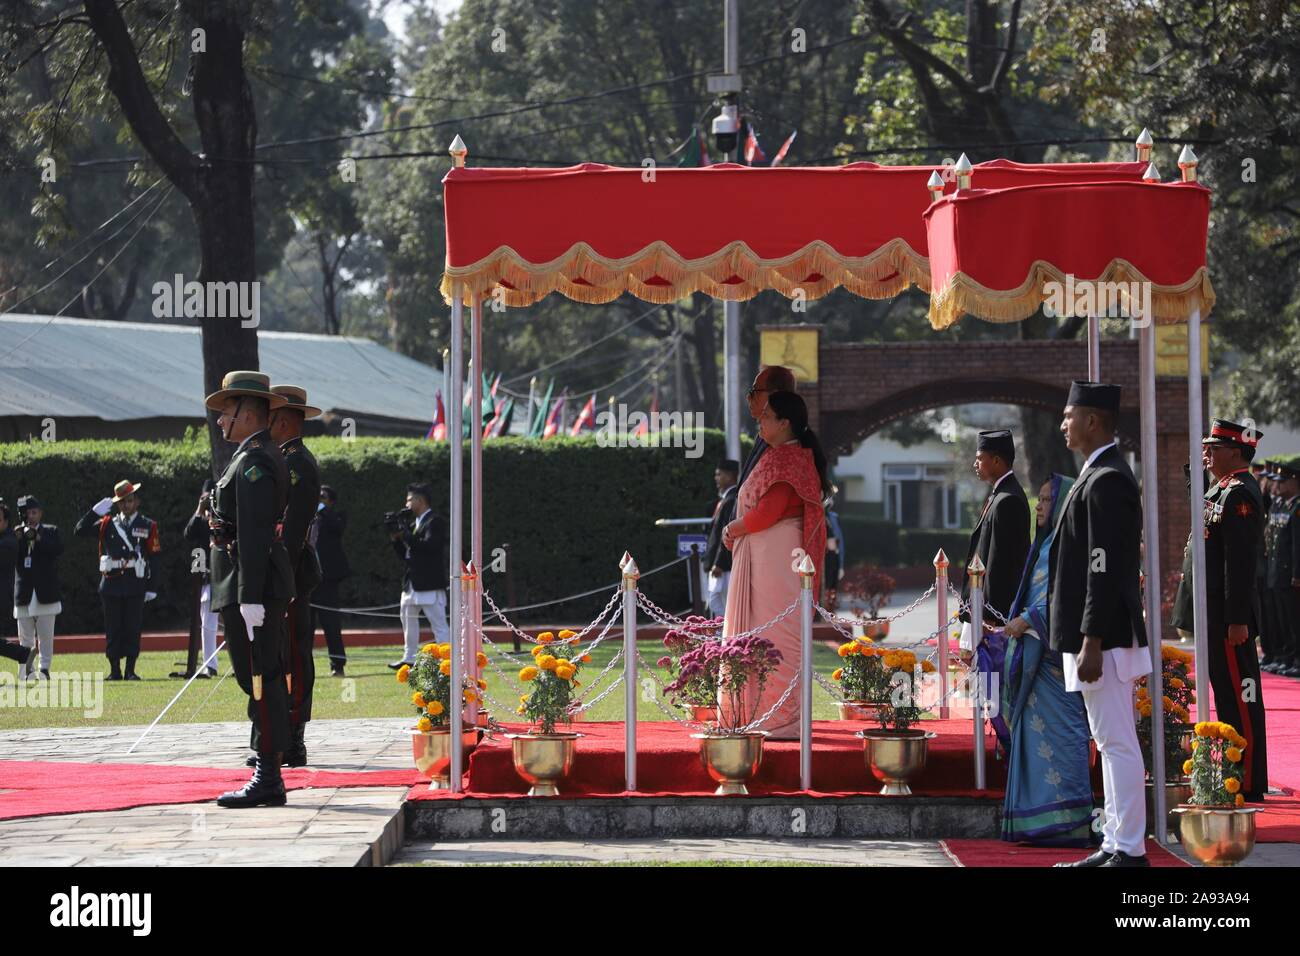 Kathmandu, Nepal. 12th Nov, 2019. President of Bangladesh, Abdul Hamid offer a guard of honor by a contingent of the Nepal Army at at Tribhuvan International Airport, Kathmandu, Nepal on Tuesday, November 12, 2019. President of Bangladesh, Abdul Hamid is on a four-day official goodwill visit to Nepal at the invitation of President of Nepal Bidhya Devi Bhandari. (Photo by Subash Shrestha/Pacific Press) Credit: Pacific Press Agency/Alamy Live News Stock Photo